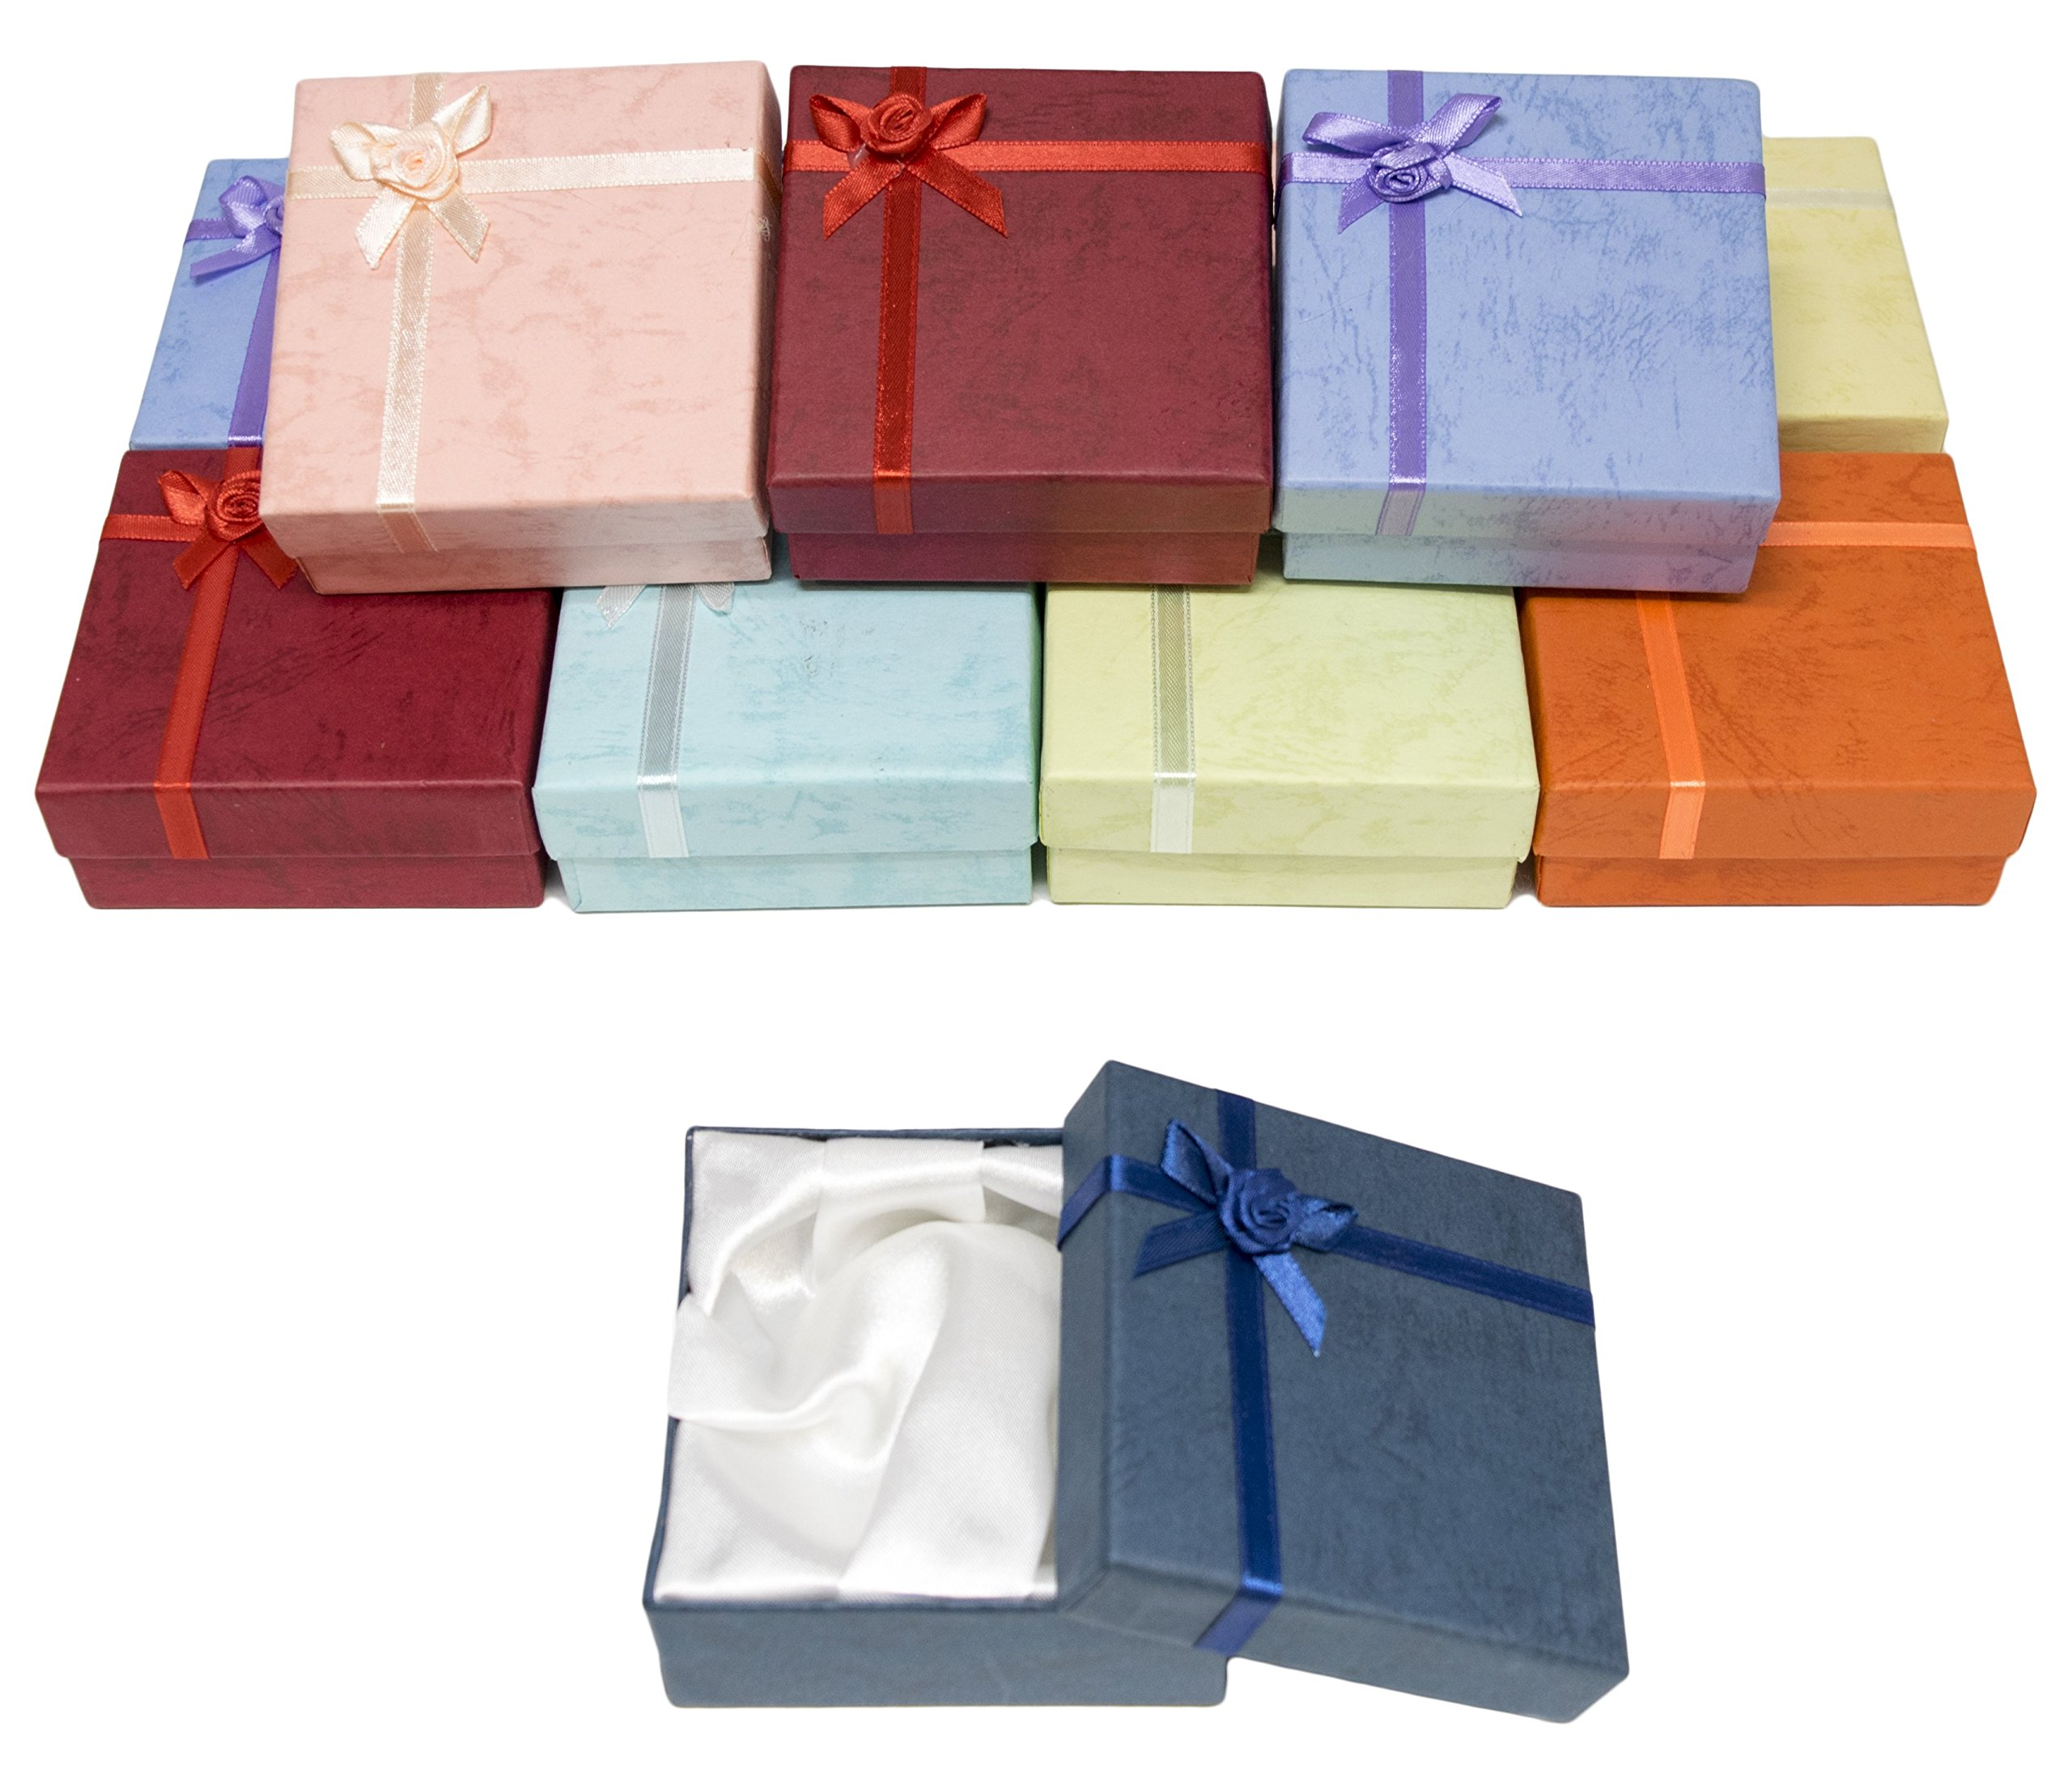 Novel Box Cardboard Jewelry Bangle Gift Boxes With Rosebug Bows in Assorted Colors 3.5X3.5X1'' (Pack of 12) + NB Cleaning Cloth